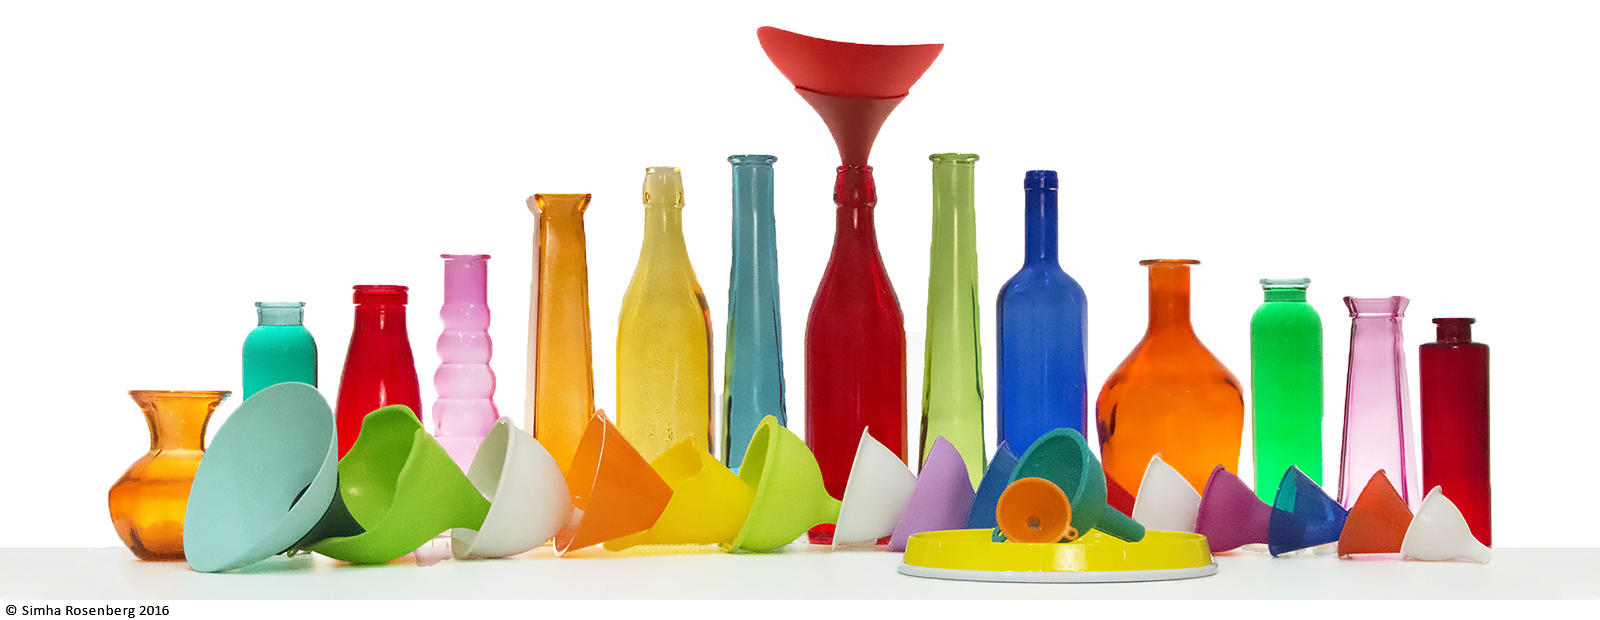 Colorful photo of bottles and funnels illustrates the concept that smart nonprofit marketing funnels in more support.